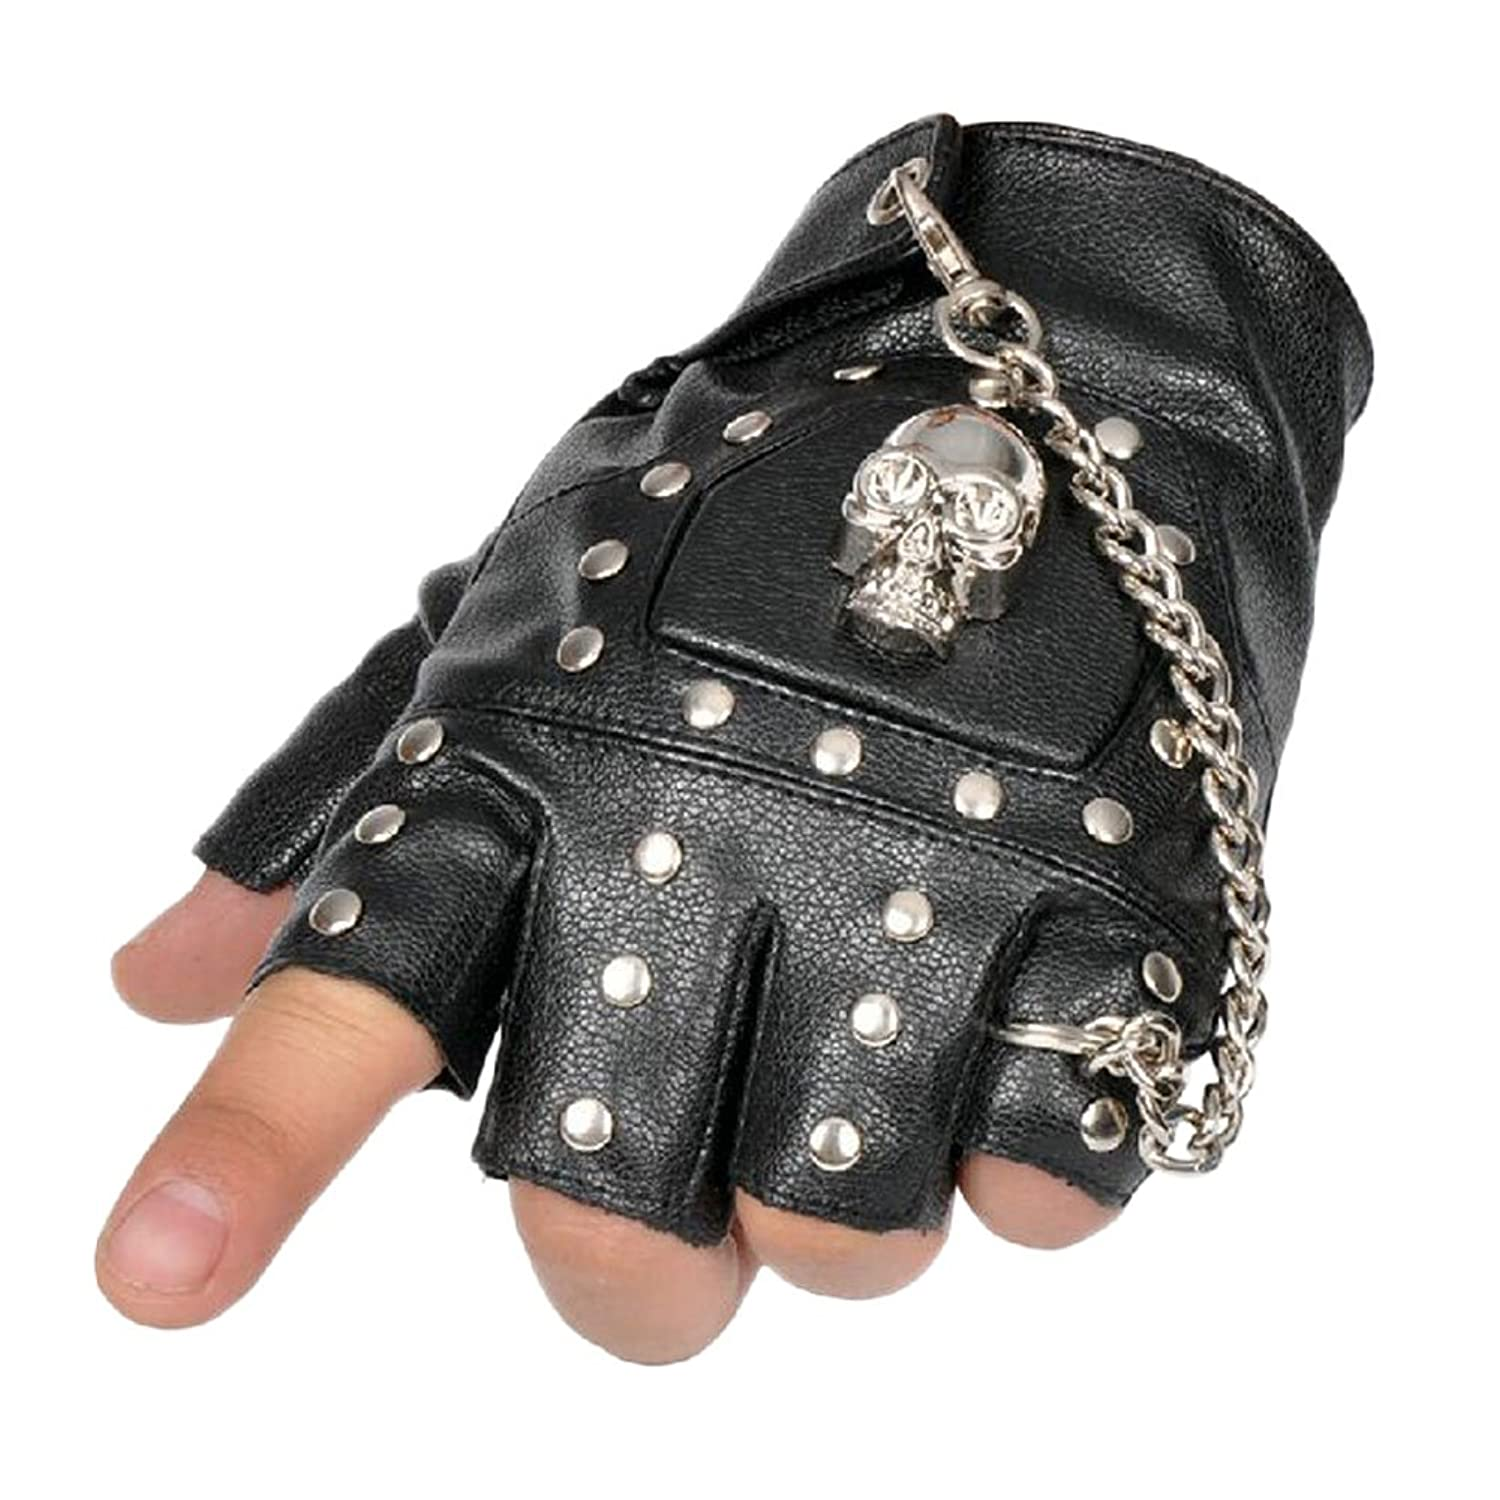 Motorcycle leather gloves amazon - Amazon Com Minibee Men S Fingerless Stud Metal Skull Chain Gloves Cycling Rock Gothic Punk Style Gloves A Pair Black One Size Clothing